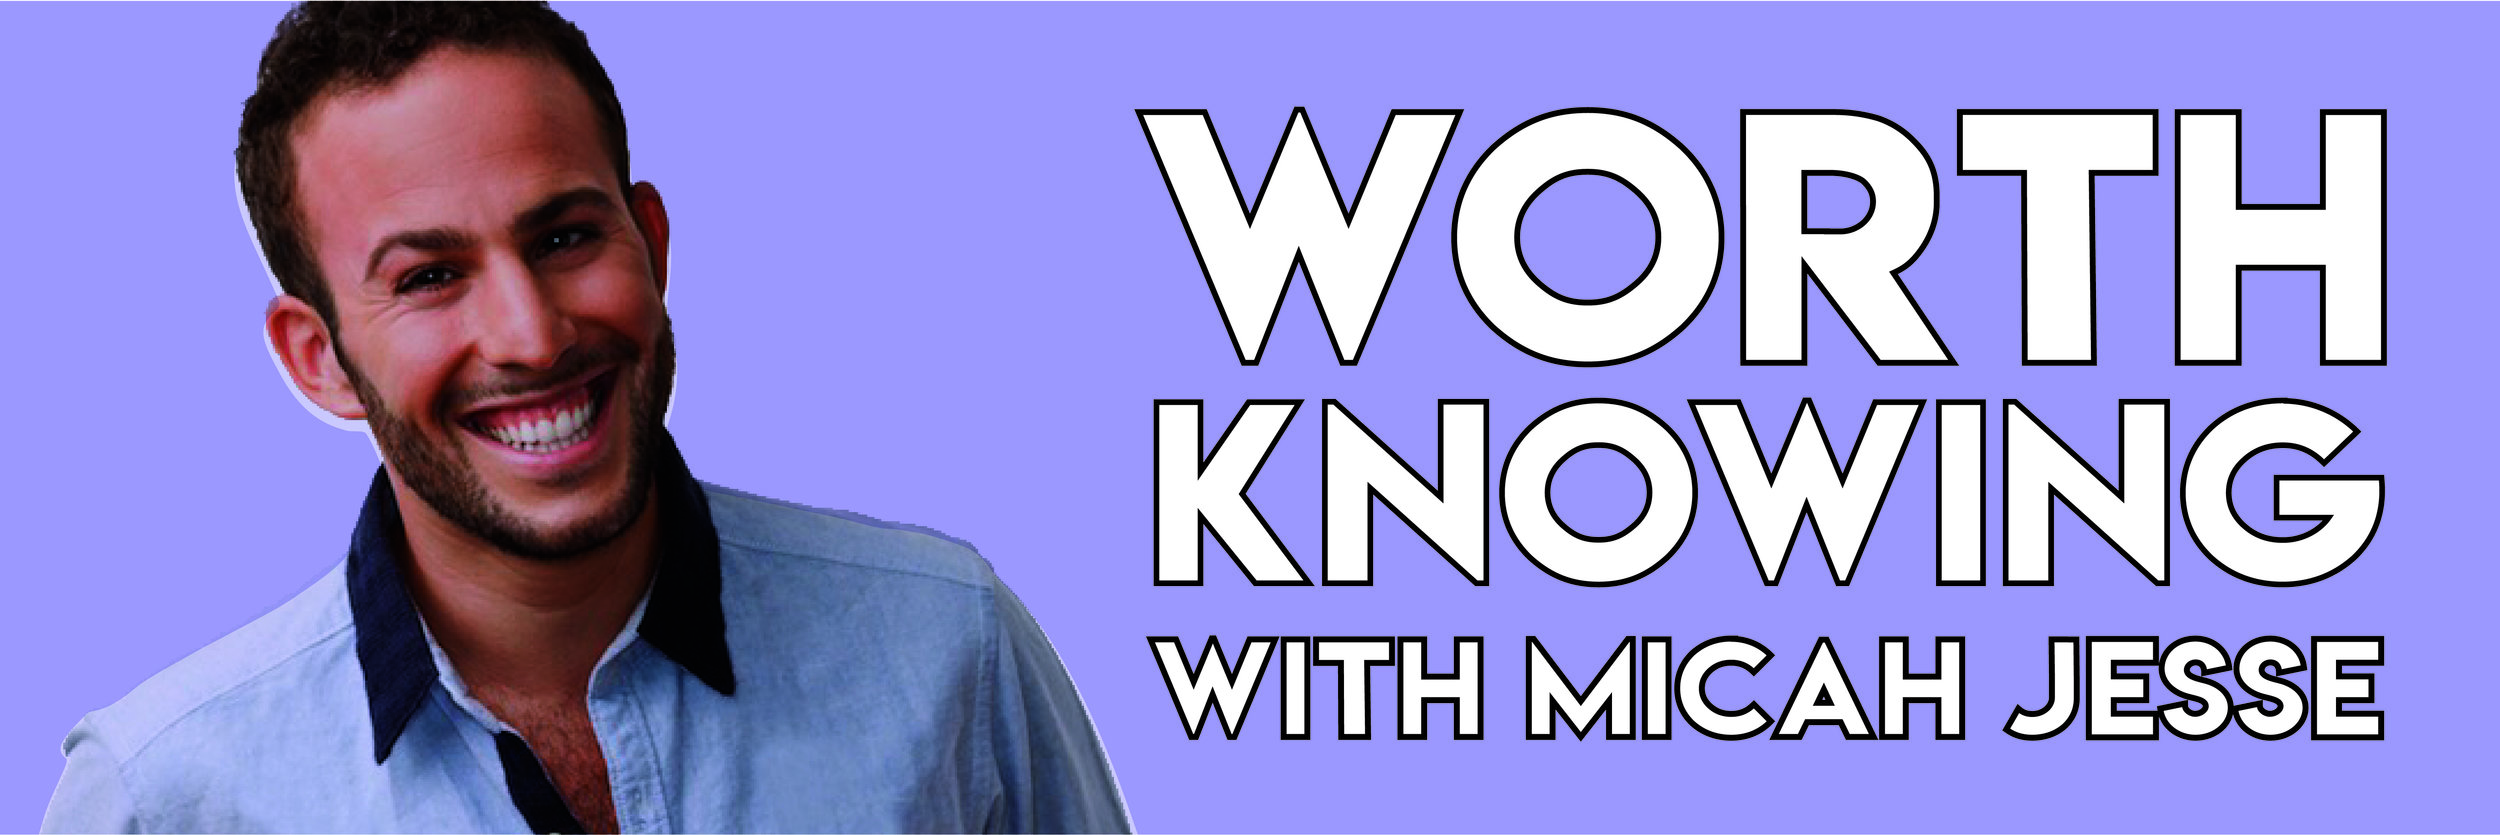 Worth Knowing with Micah Jesse Podcast Banner